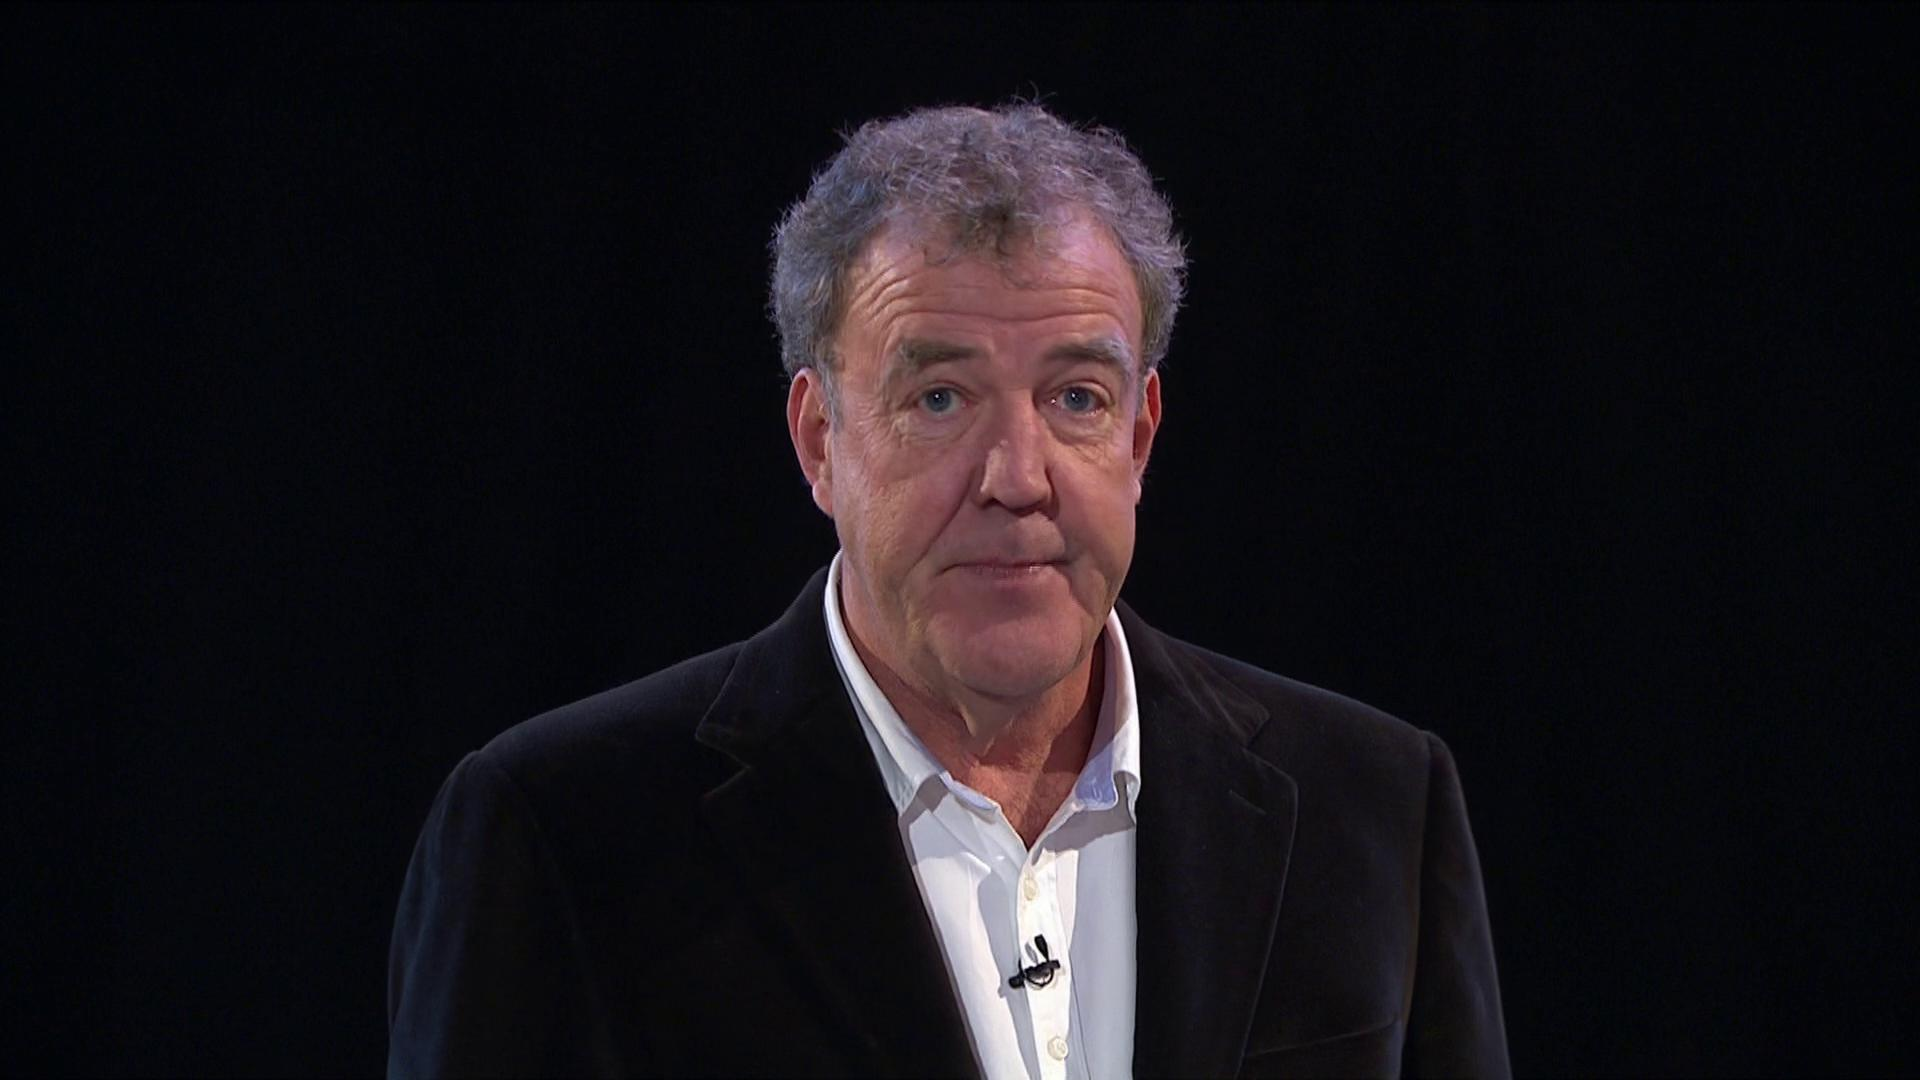 jeremy clarkson Jeremy charles robert clarkson (born 11 april 1960) is an english broadcaster, journalist and writer who specialises in motoringhe is best known for co-presenting the bbc tv show top gear with richard hammond and james may from october 2002 to march 2015 he also currently writes weekly columns for the sunday times and the sun from a career as a local journalist in northern england.